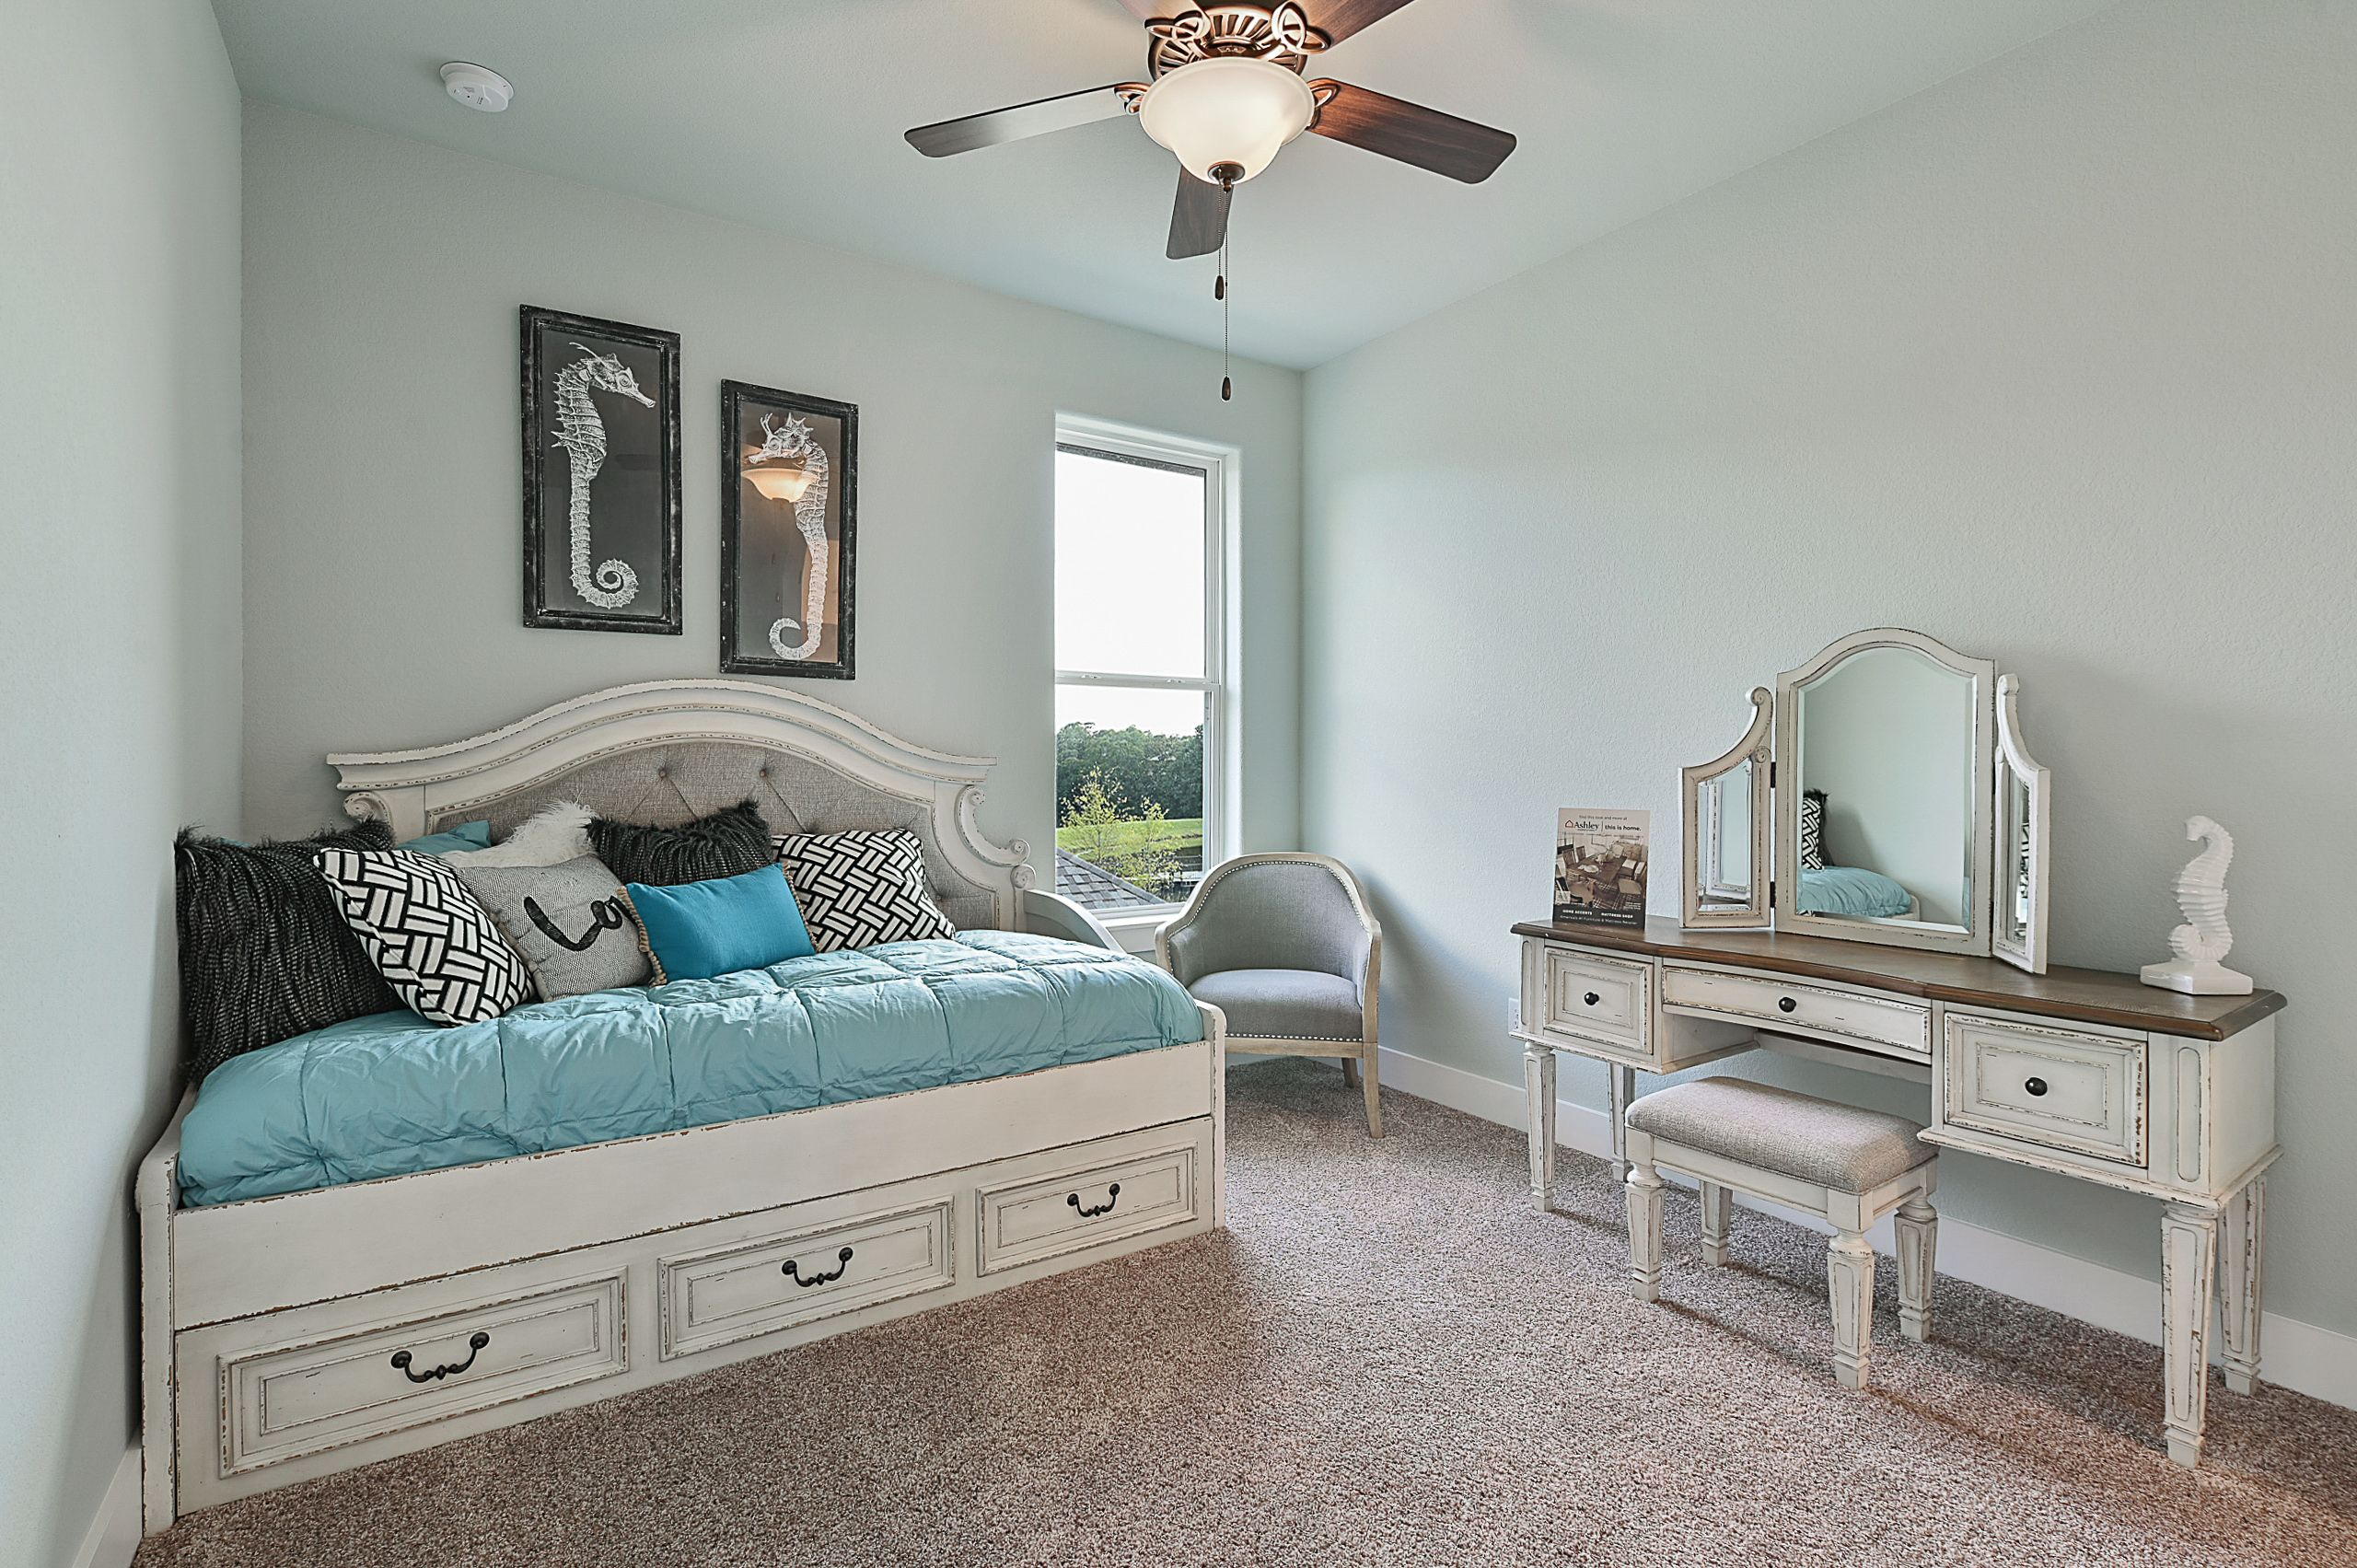 Bedroom featured in the Emerson By Blackstone Homes in Bryan-College Station, TX